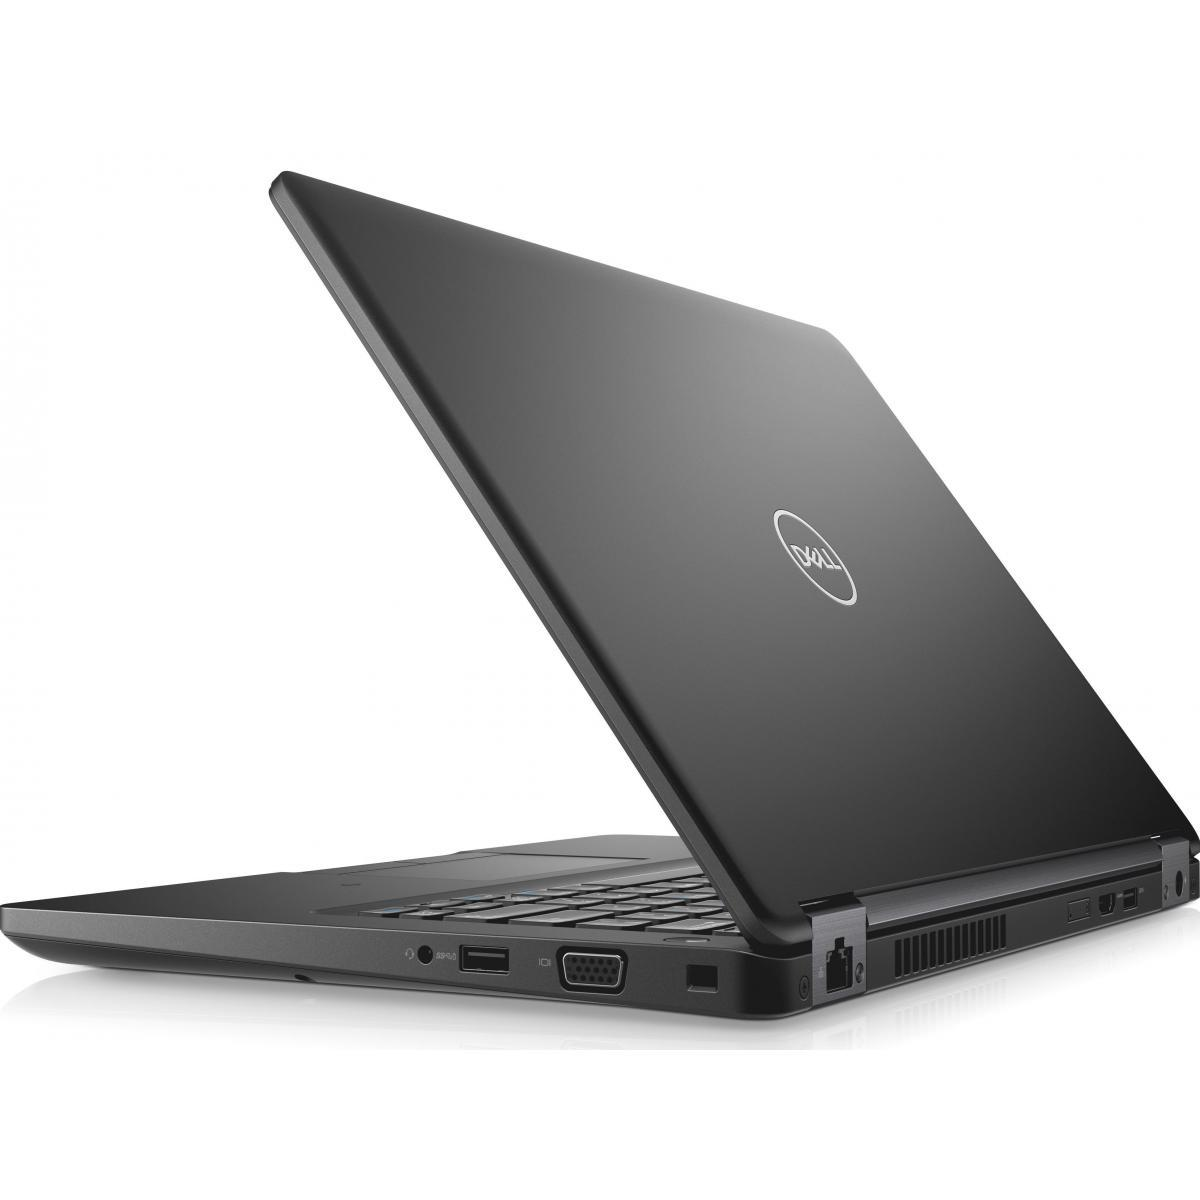 "Dell Latitude 5490 14"" Laptop, Intel Core i5 1.7Ghz 16GB 512GB SSD Windows 10 Pro Refurbished"